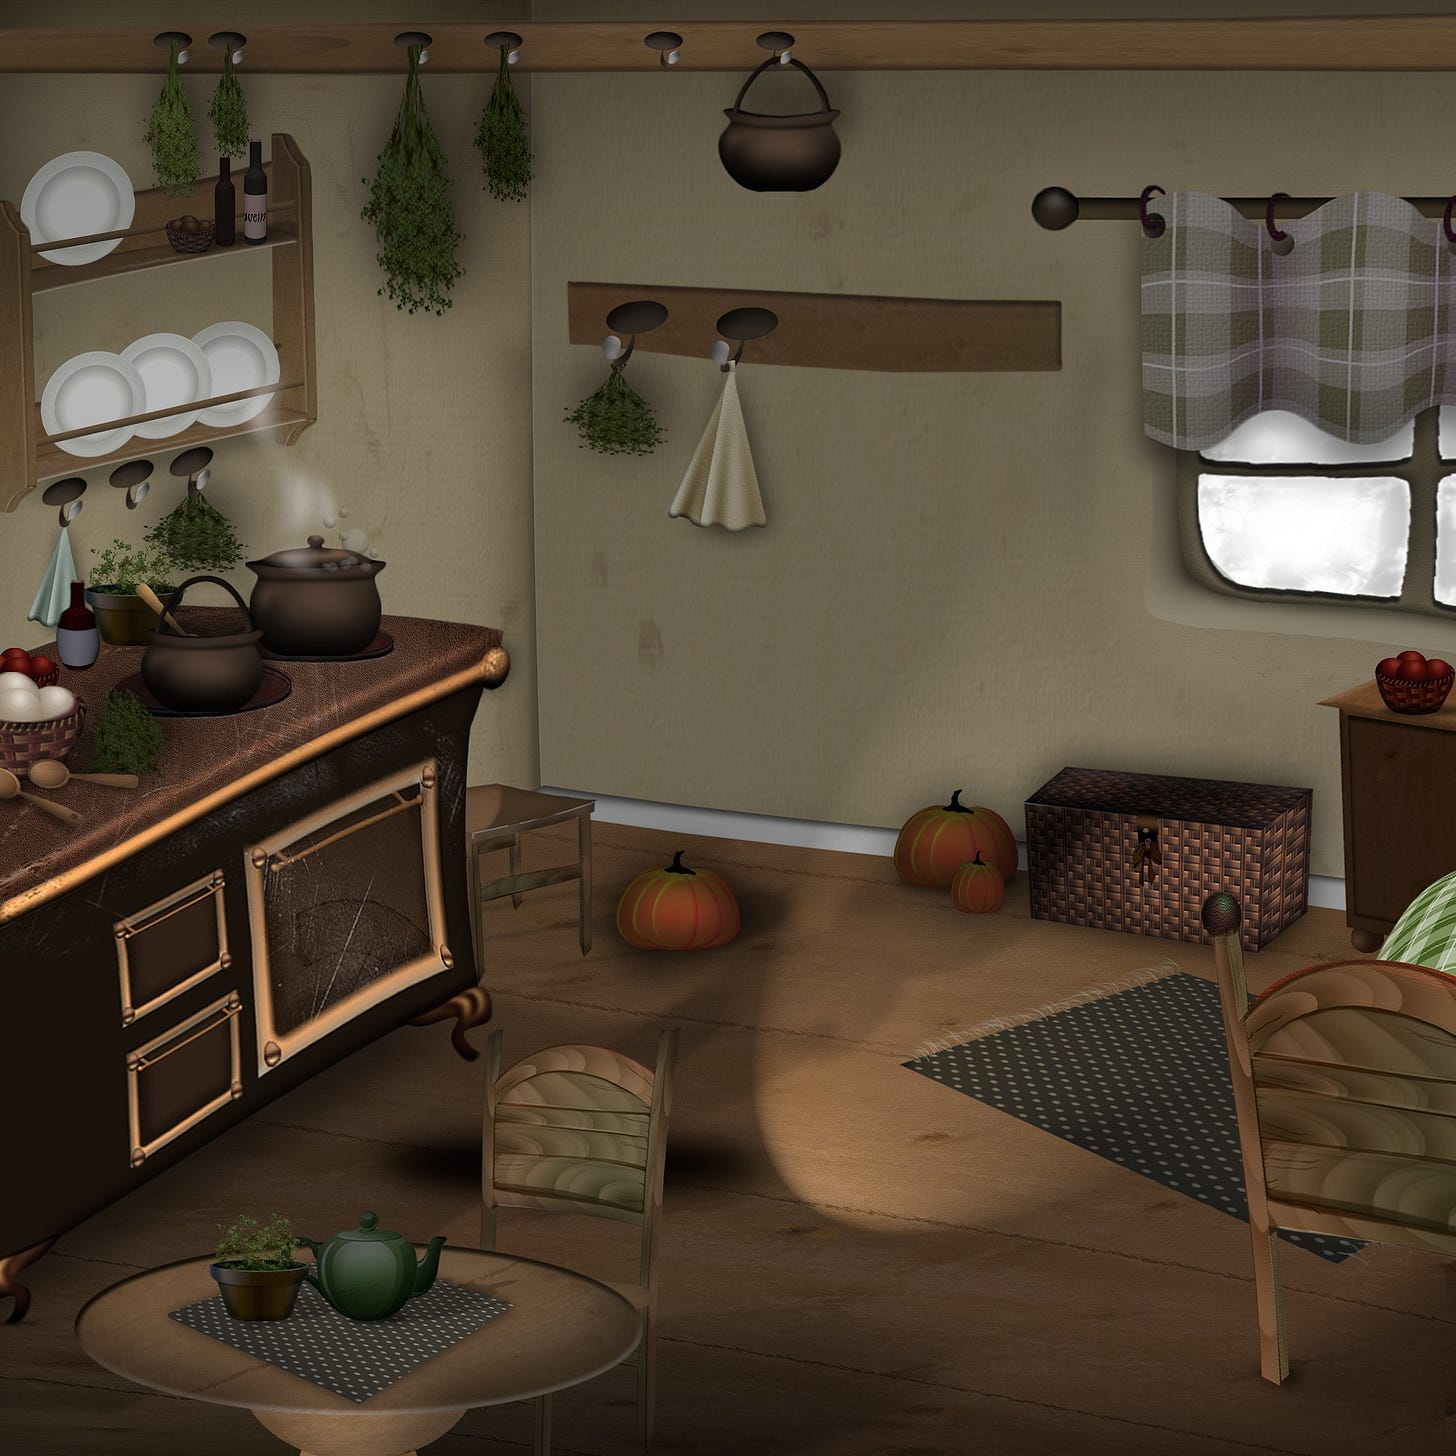 Illustration of a one bedroom cottage with a fairytale like quality with breakfast cooking in the stove.